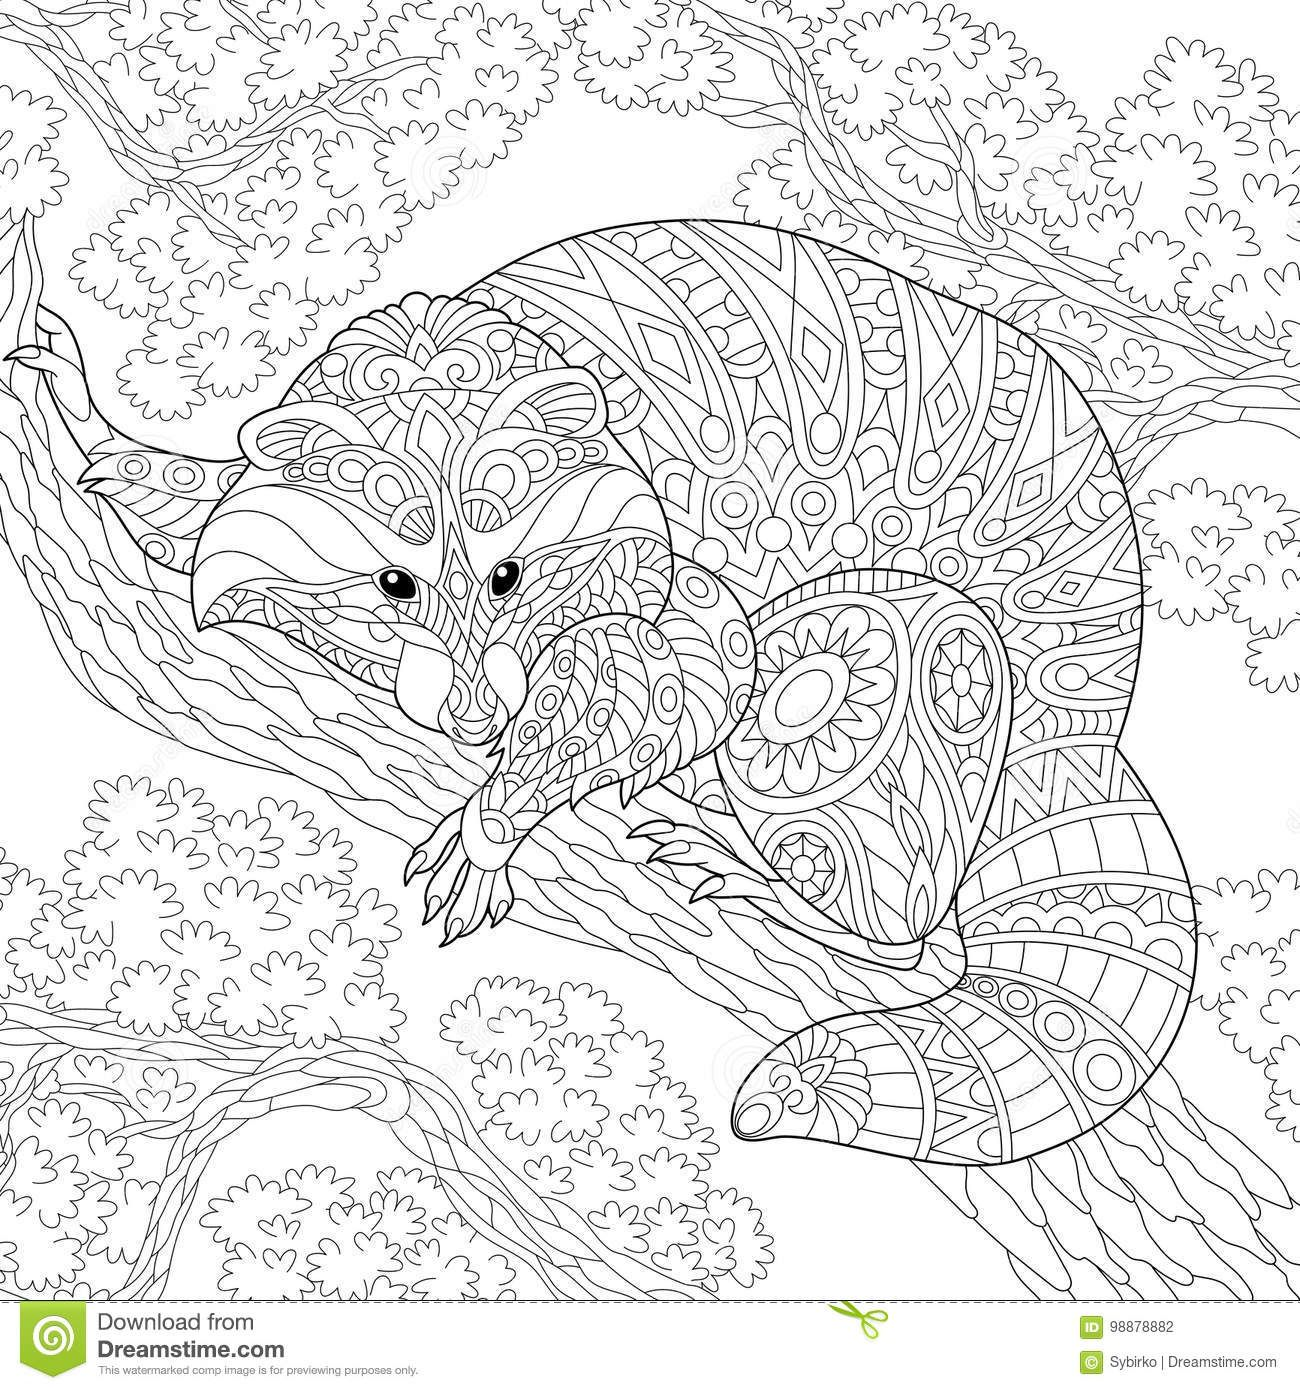 Pin By Linda Thielges On Adult Coloring